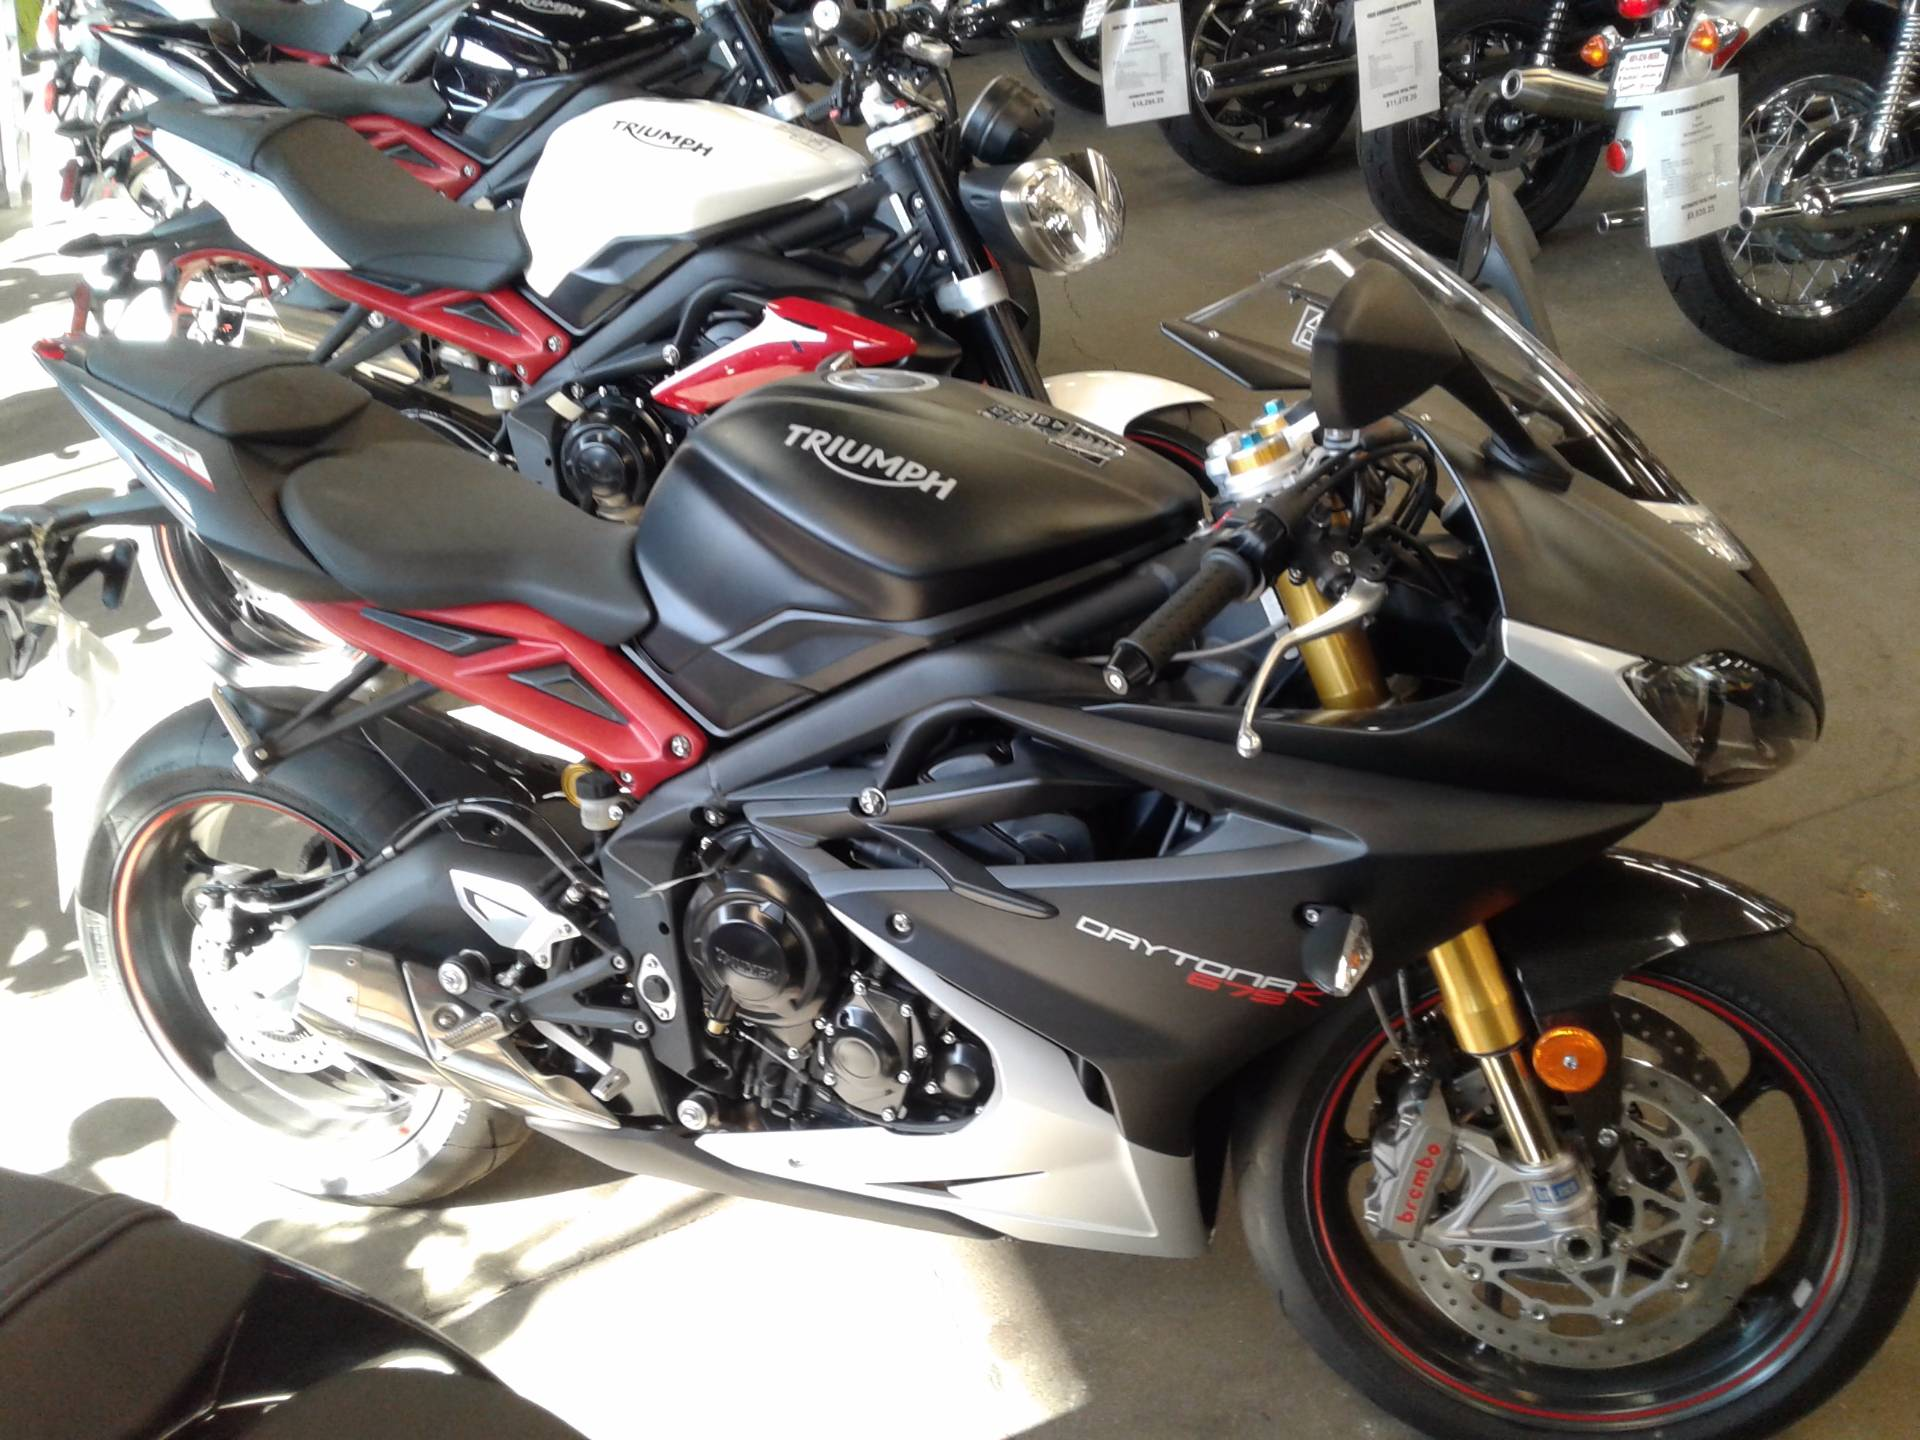 New 2016 Triumph Daytona 675 R Abs Motorcycles In Bakersfield Ca